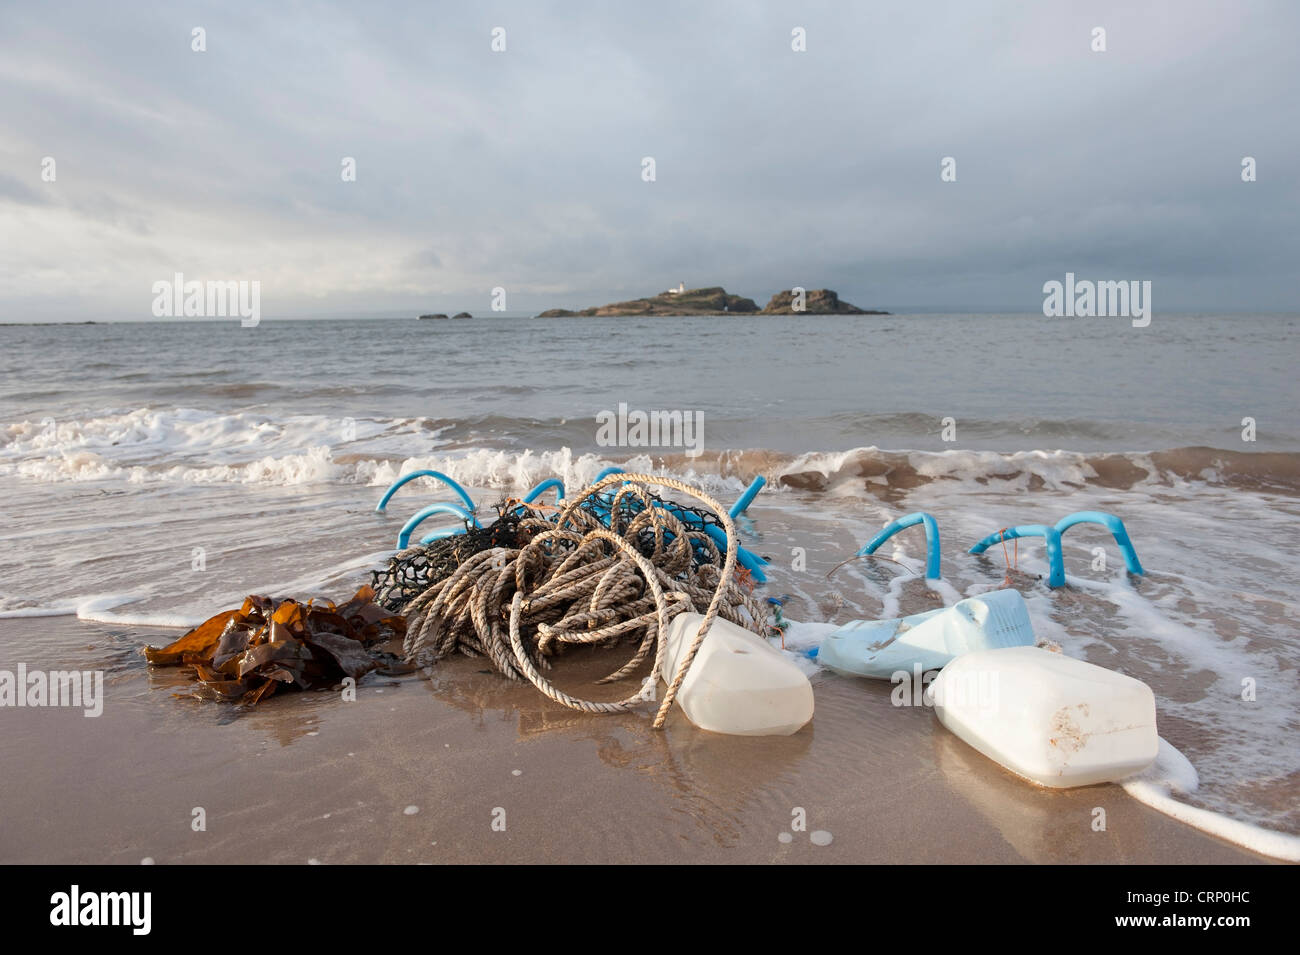 Broken lobster pots washed ashore on a beach after a storm, with the Island of Fidra on the horizon, Scotland. - Stock Image